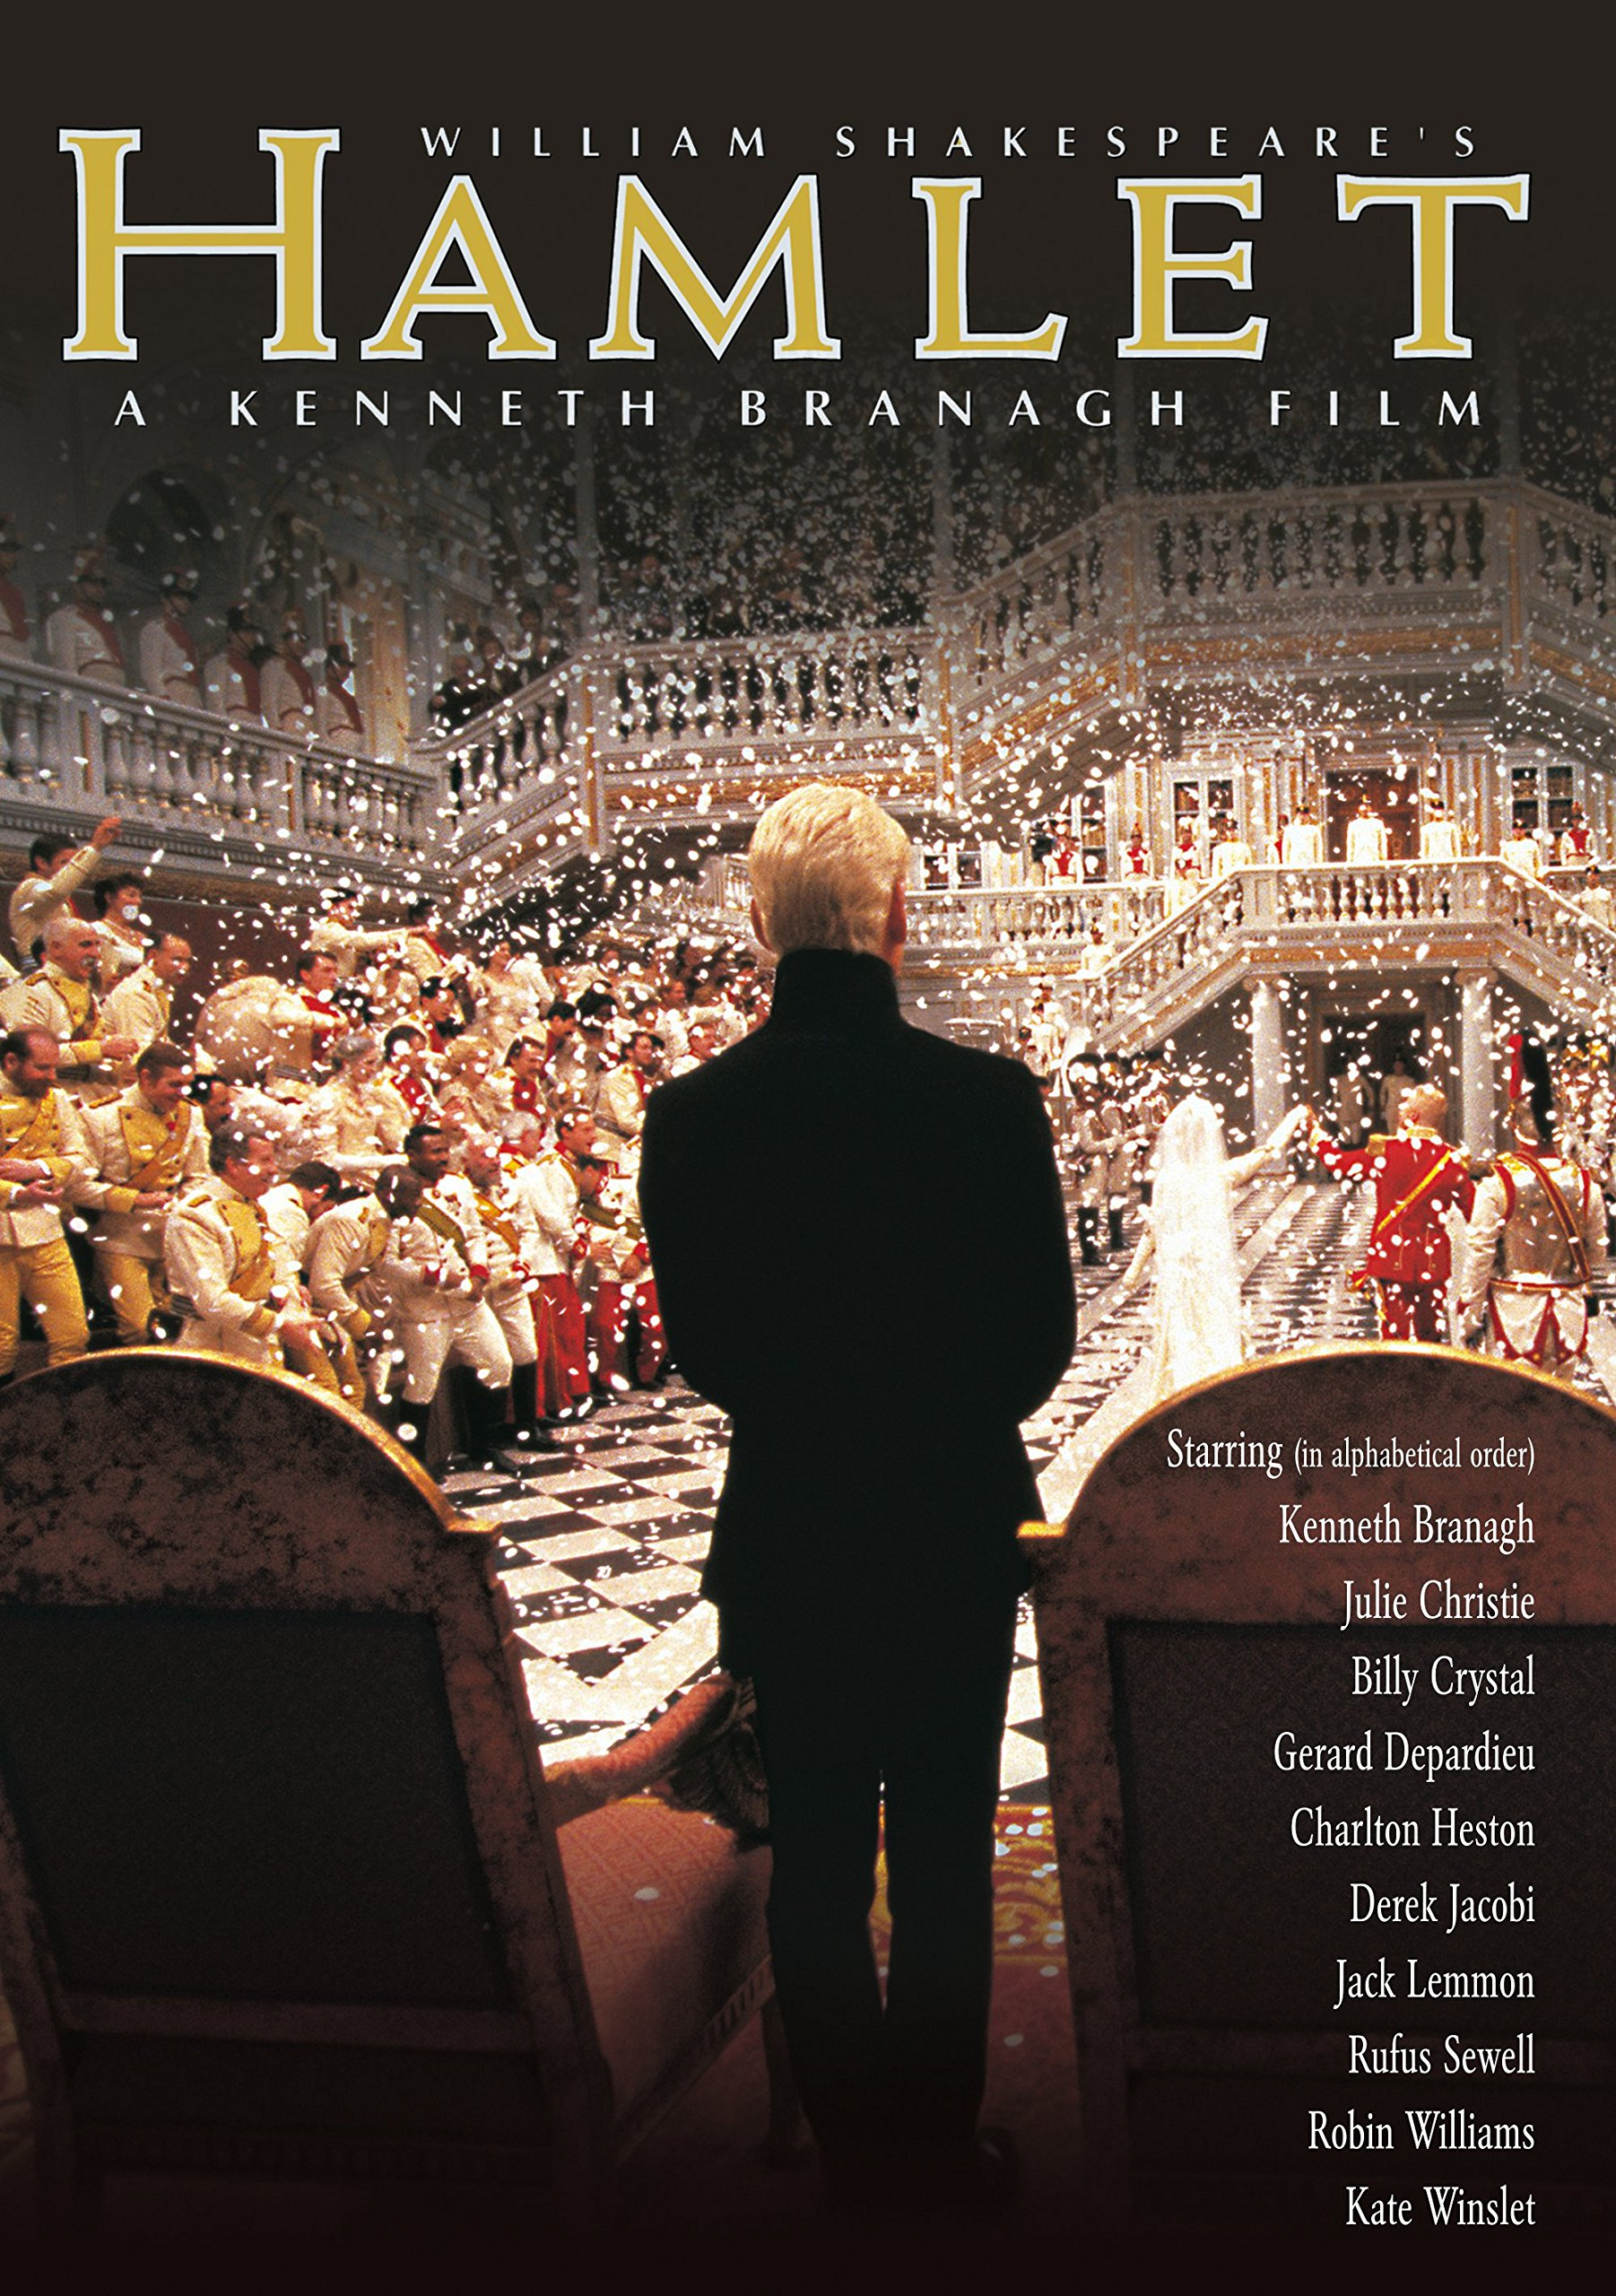 Amazon.com: Hamlet (1996): Kenneth Branagh, Julie Christie, Kate Winslet,  Derek Jacobi: Amazon Digital Services LLC